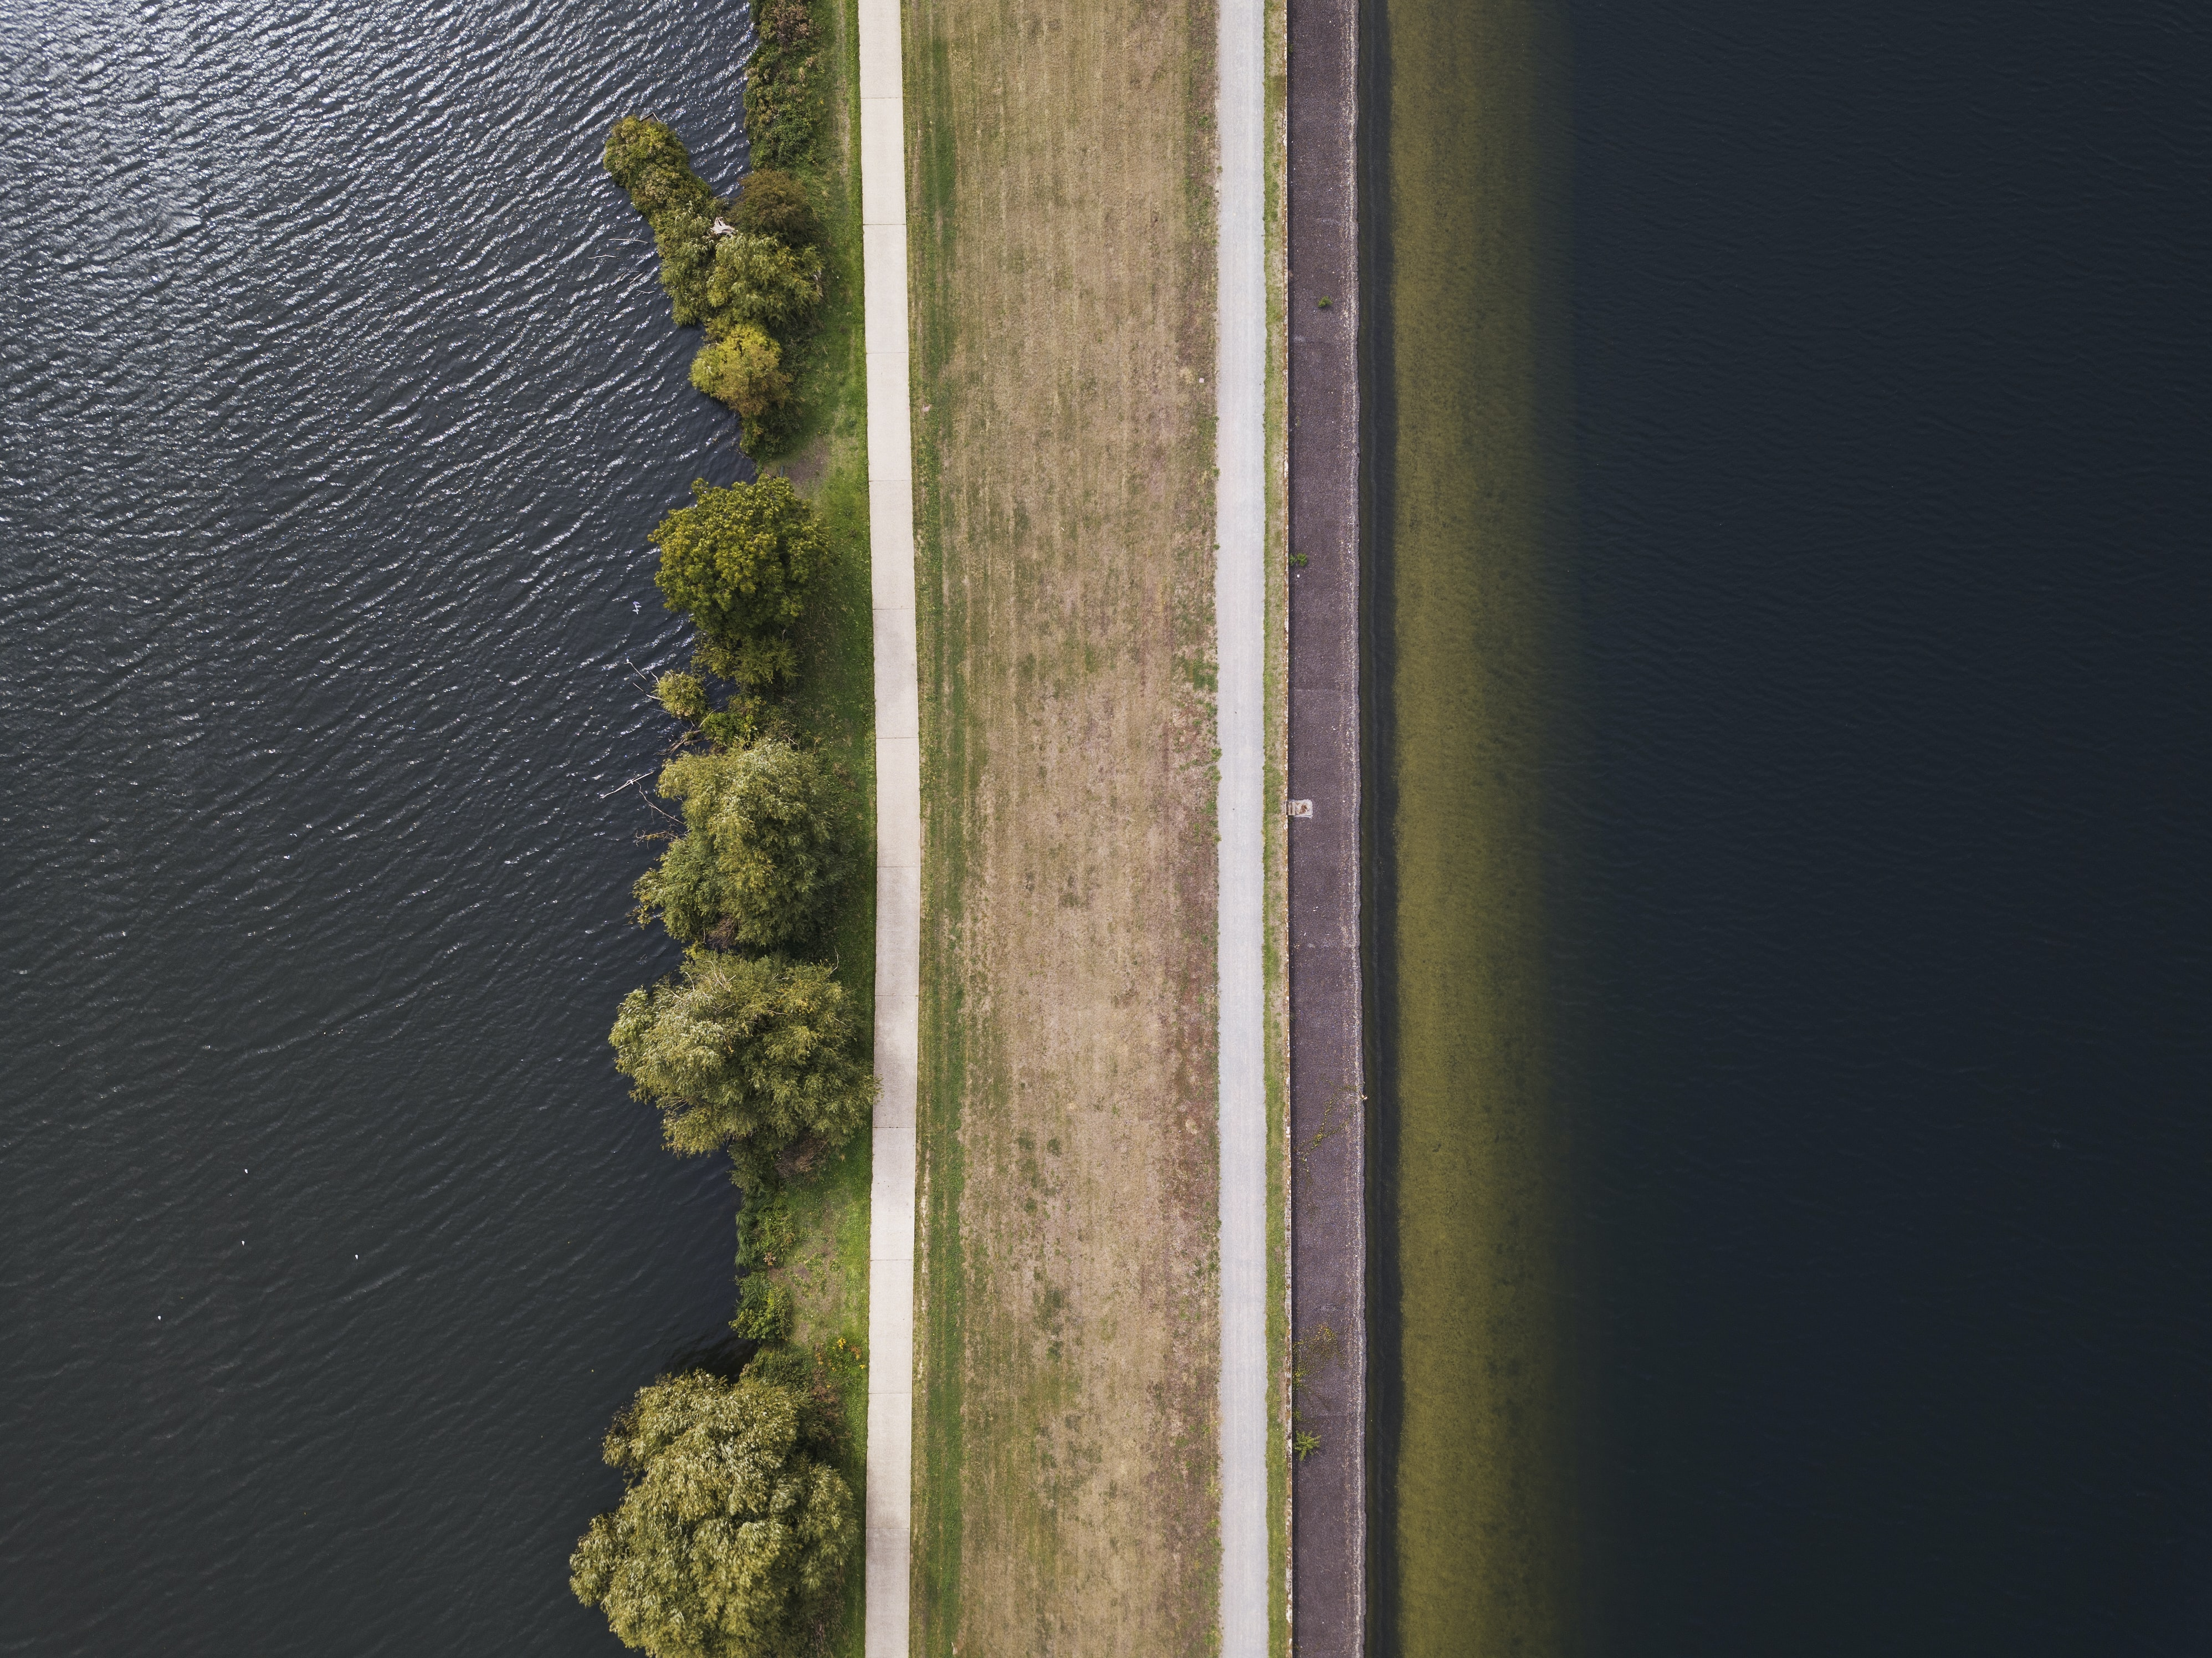 aerial photography of brown road near the body of water at daytime